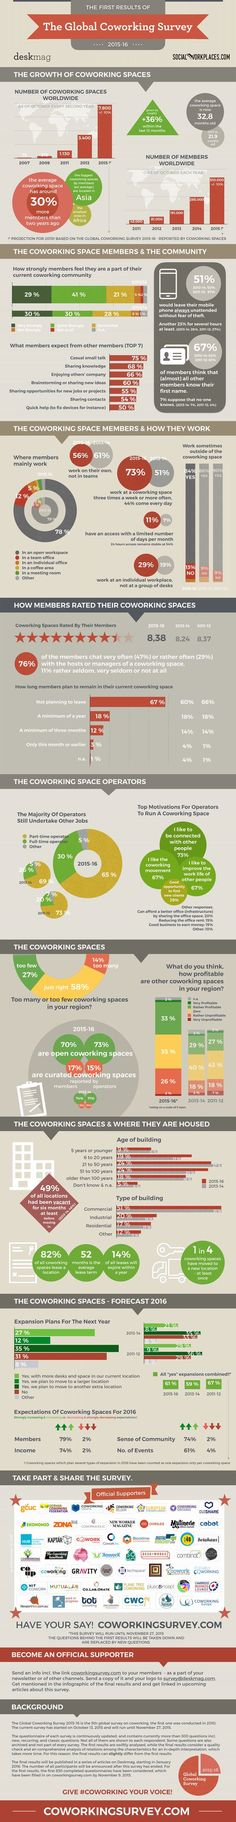 All stats are also summarised in an article on: http://www.deskmag.com/en/first-results-of-the-new-global-coworking-survey-2015-16: